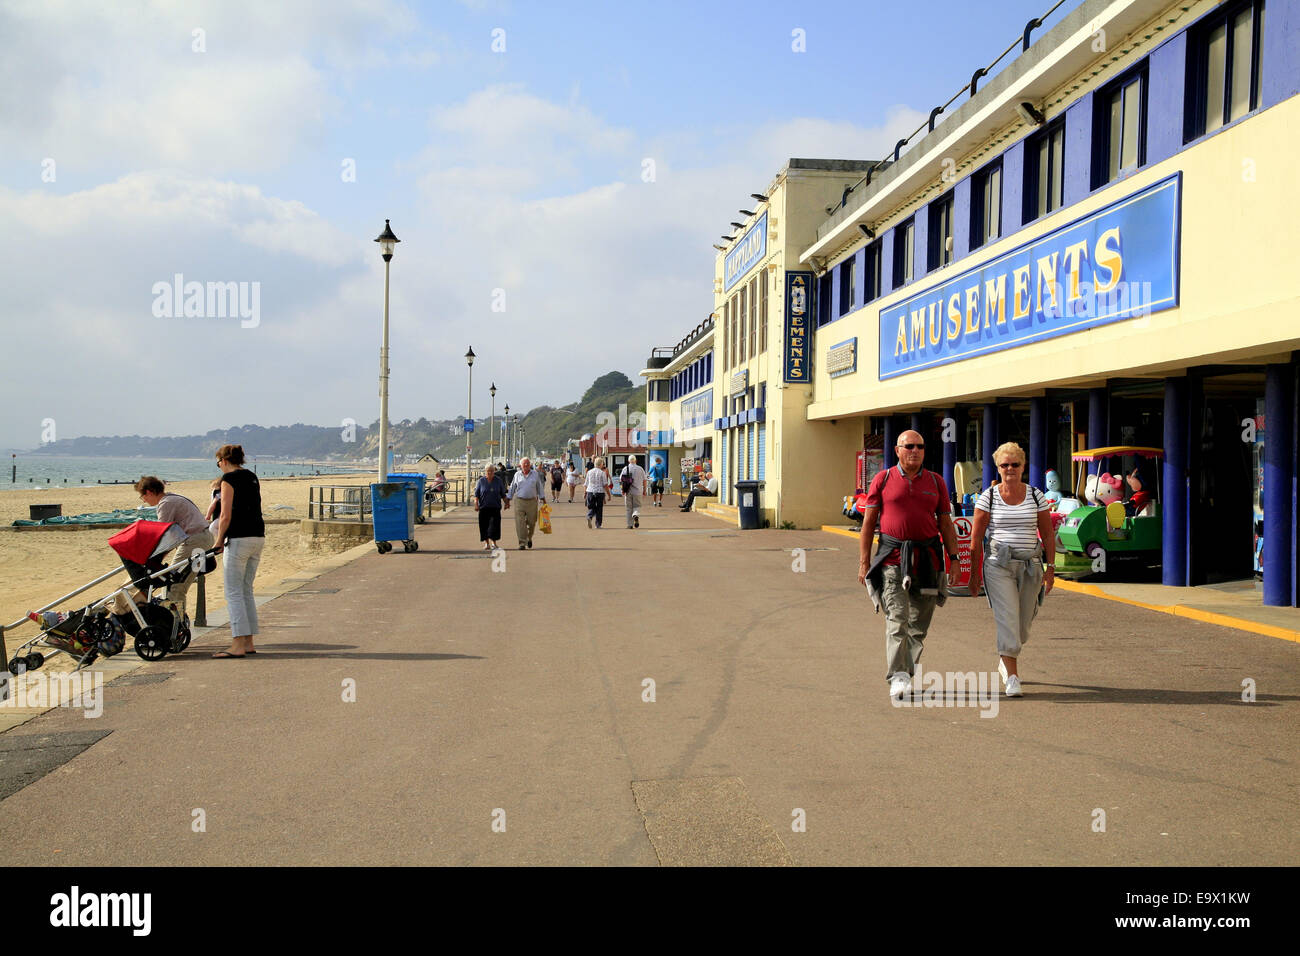 Tourists, holidaymakers and locals enjoy a walk on the promenade at Bournemouth, England, UK. - Stock Photo